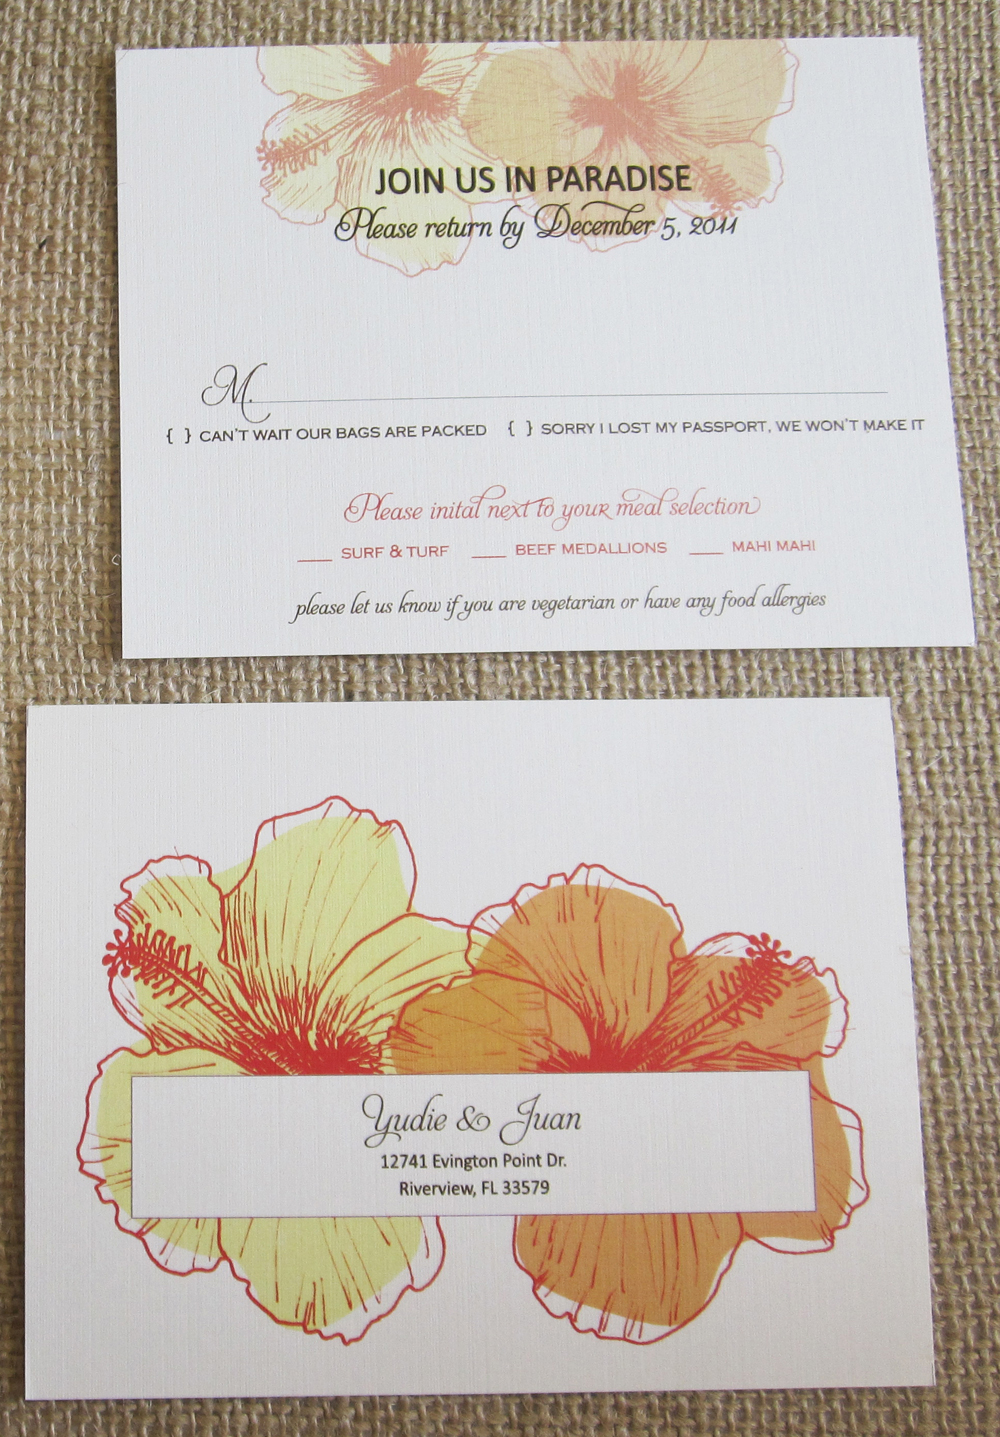 How To Fill Out A Wedding Rsvp.Rsvp Card Insight Etiquette Every Last Detail